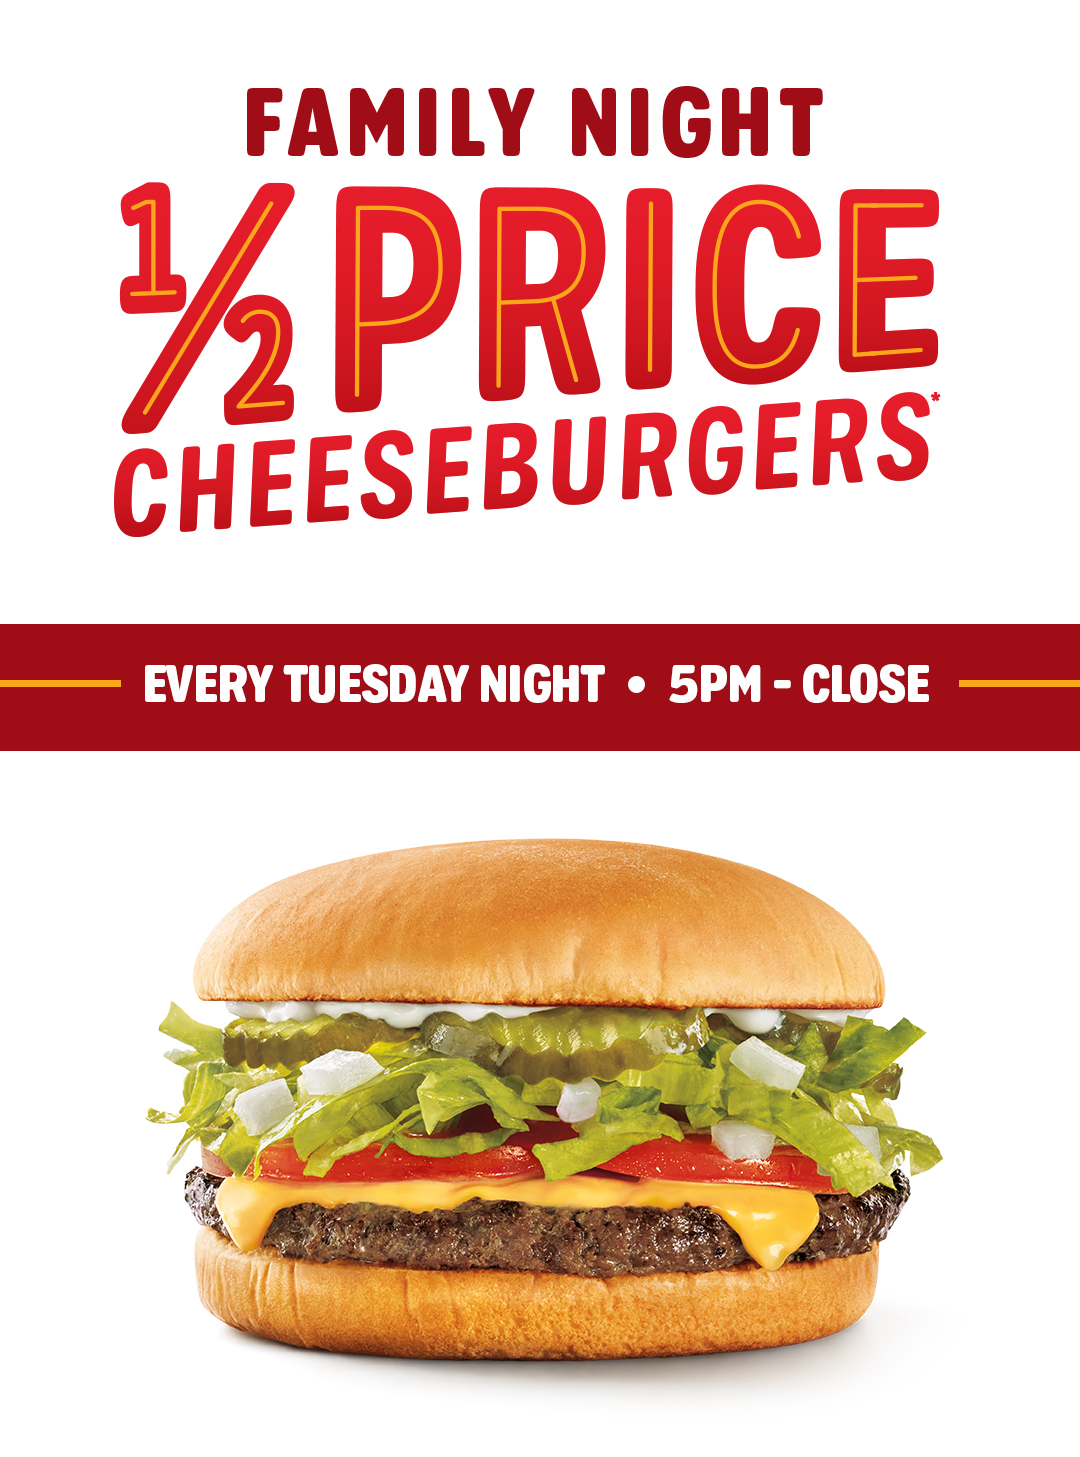 Half price SONIC Cheeseburgers Tuesday nights 5pm-close!